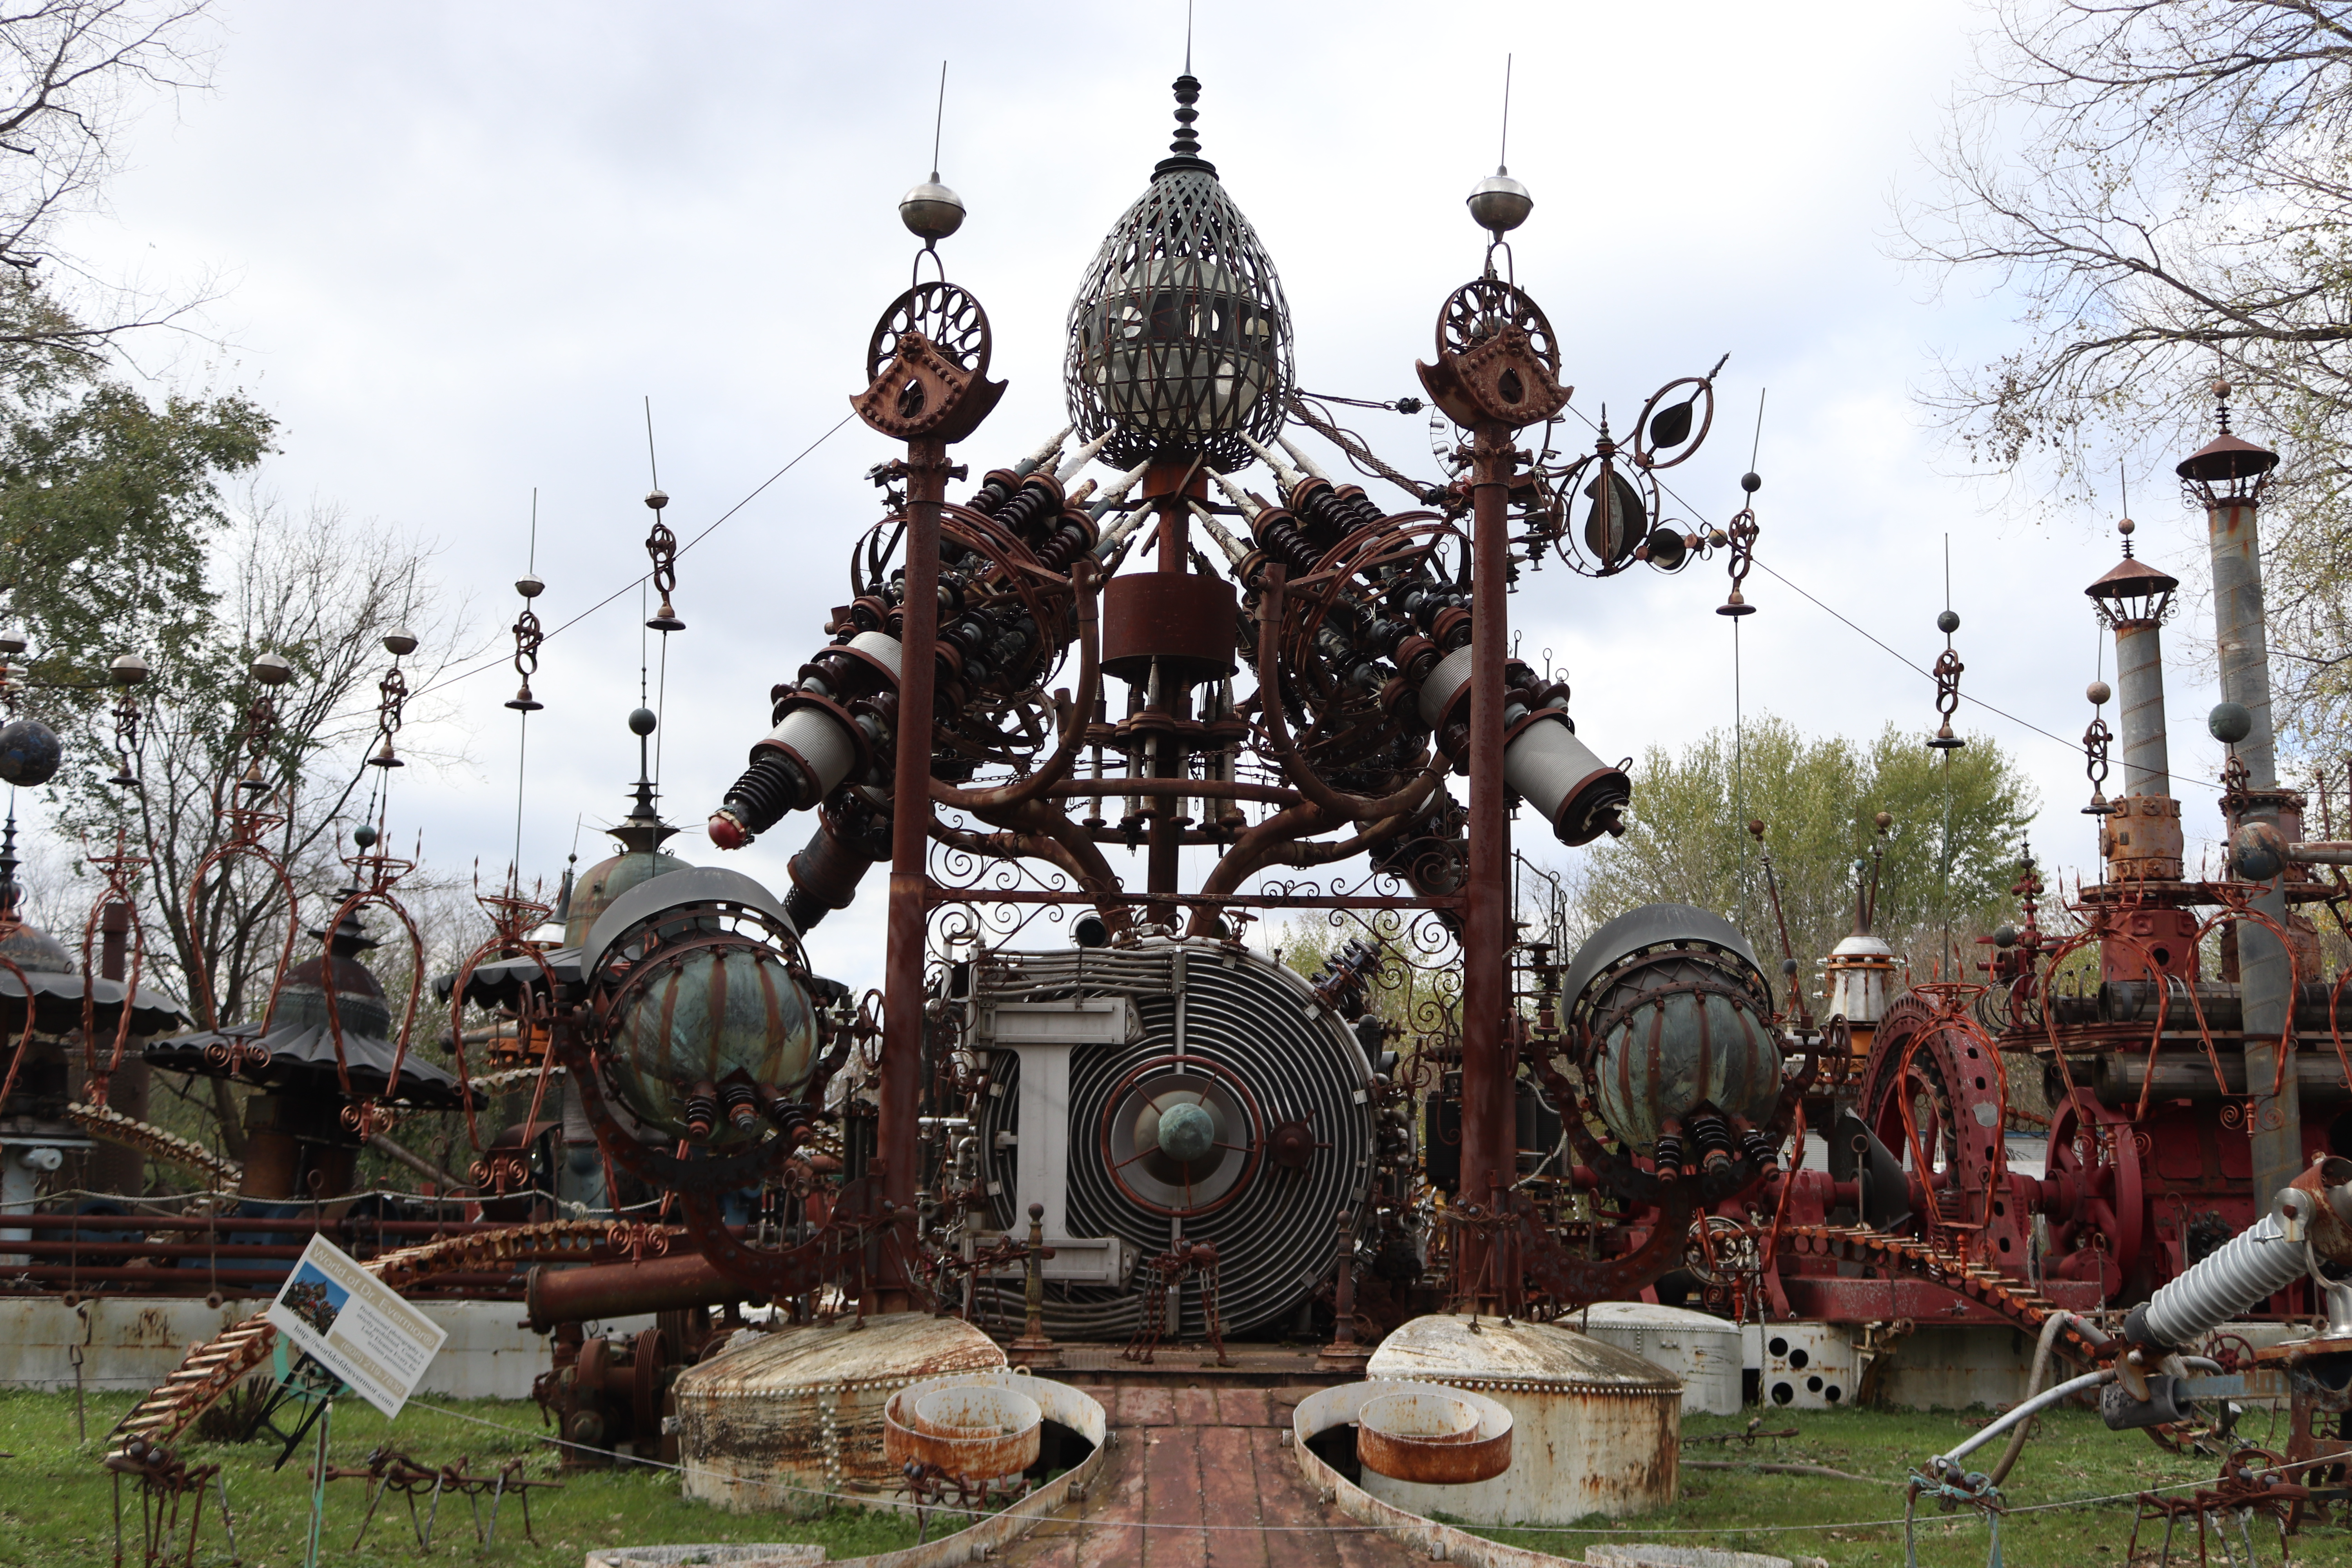 Dr. Evermor's Forevertron Sculpture Park